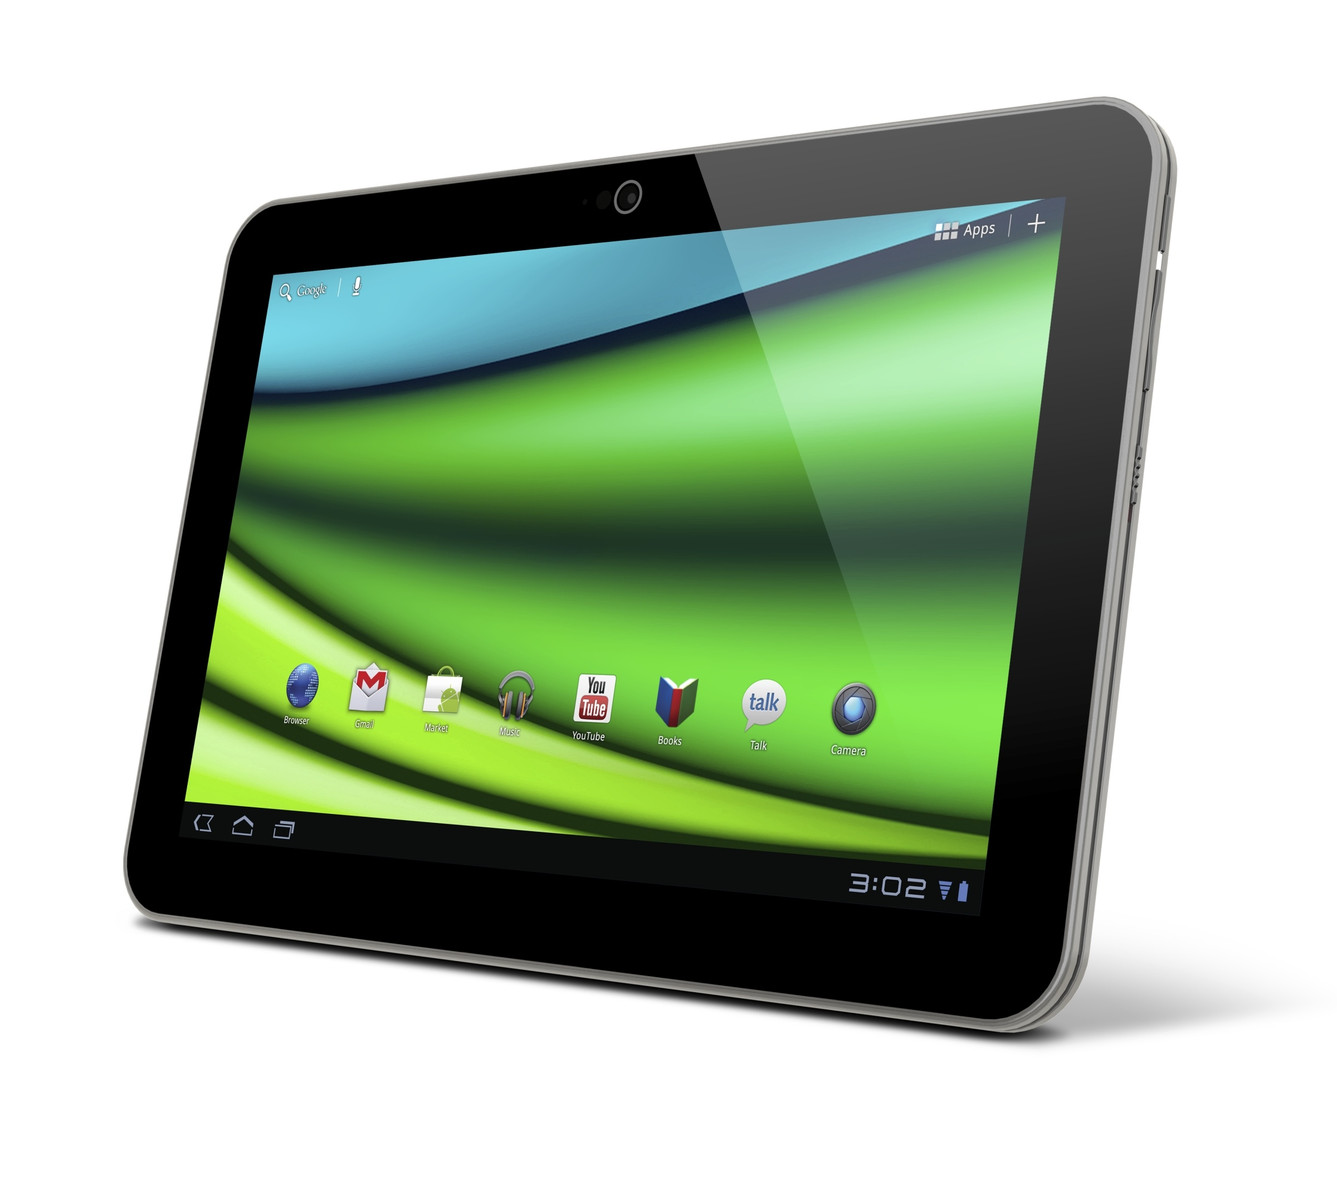 Toshiba Excite X10 ultrathin tablet to sell for $529 ...